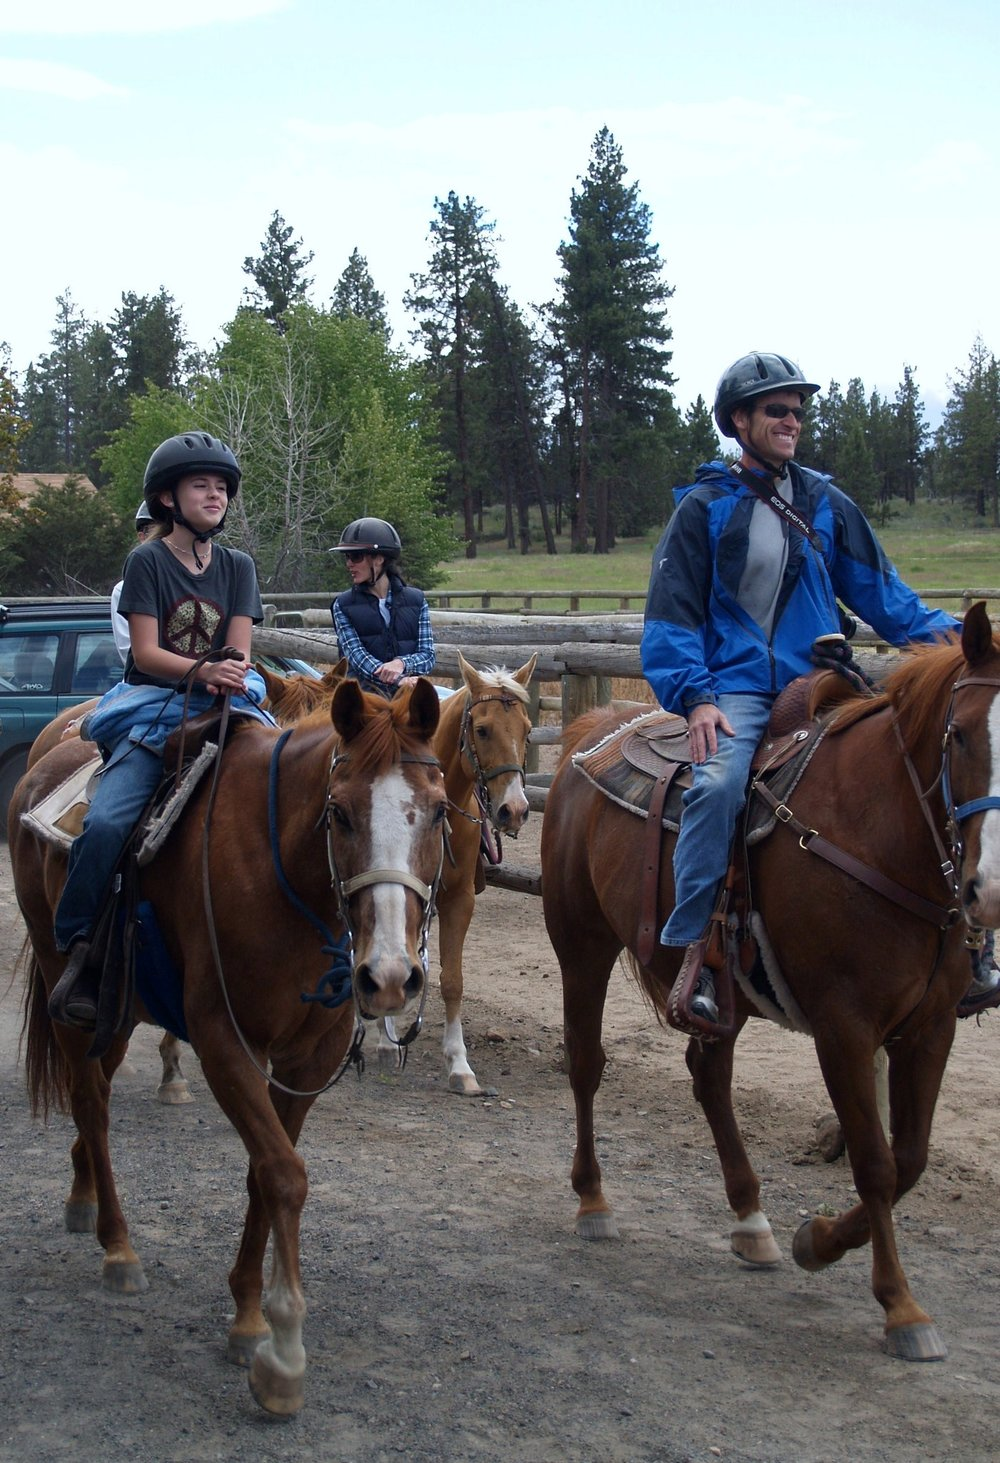 trail-ride-group-1.jpg